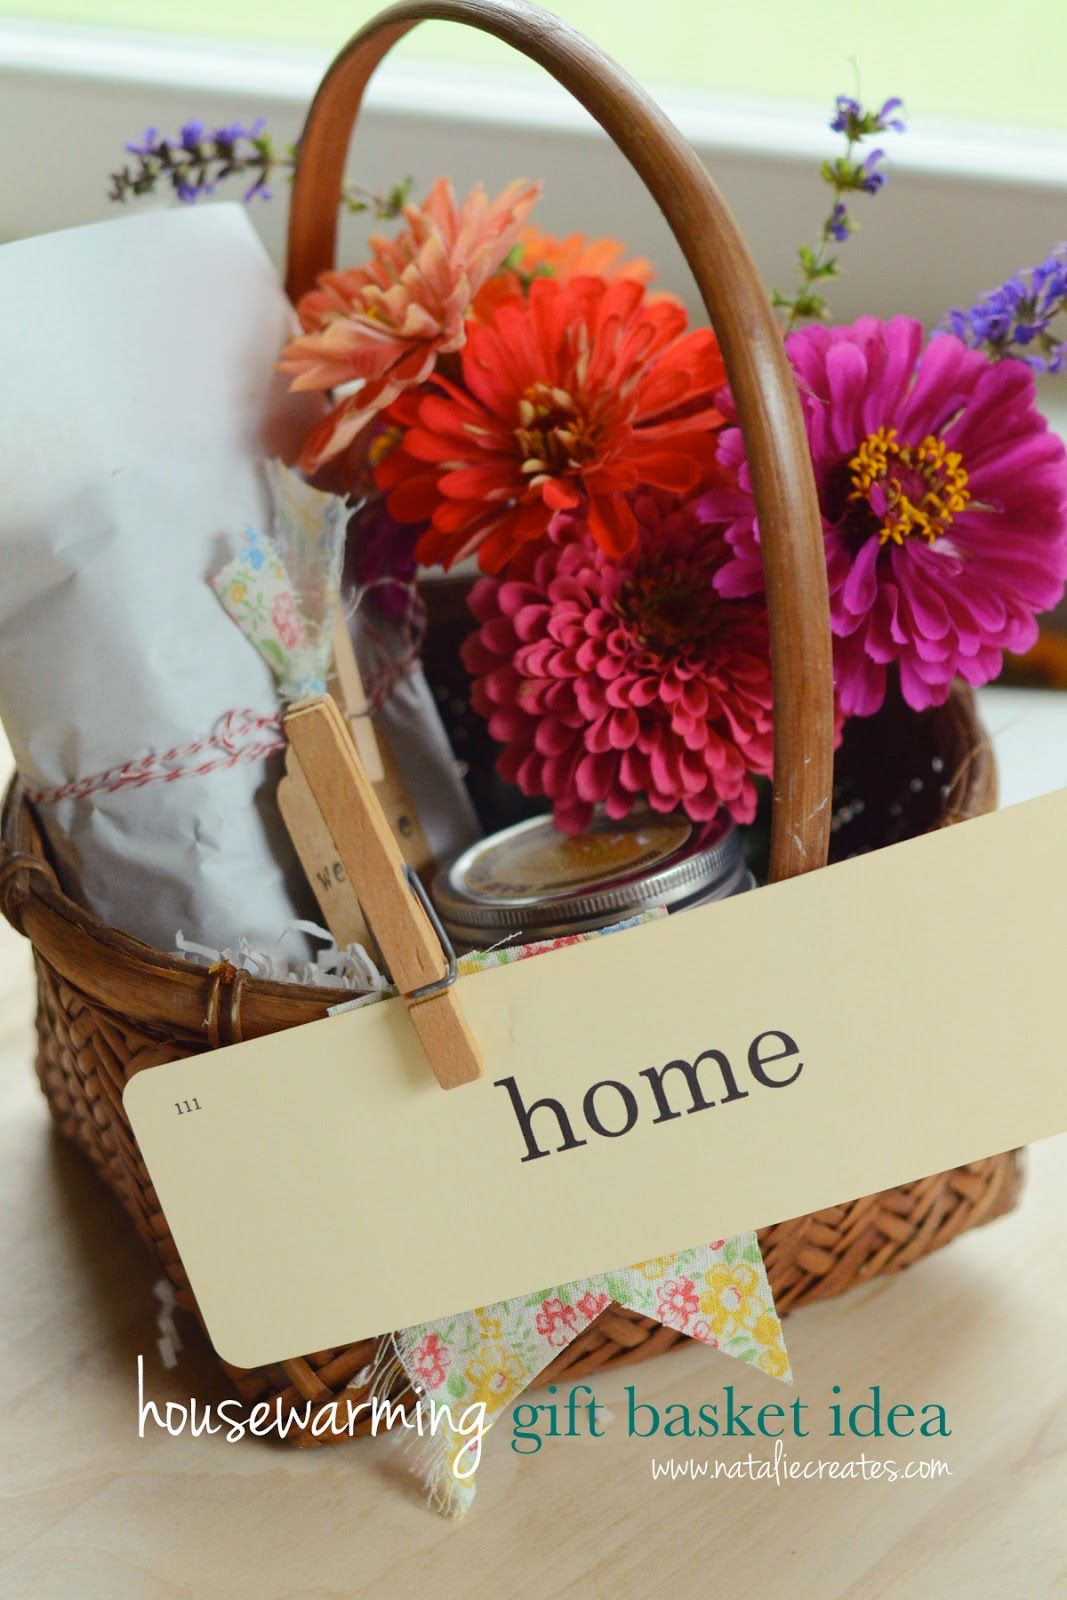 Homemade Housewarming Gift Ideas Housewarming Gift Basket Idea For Under 10 Natalie